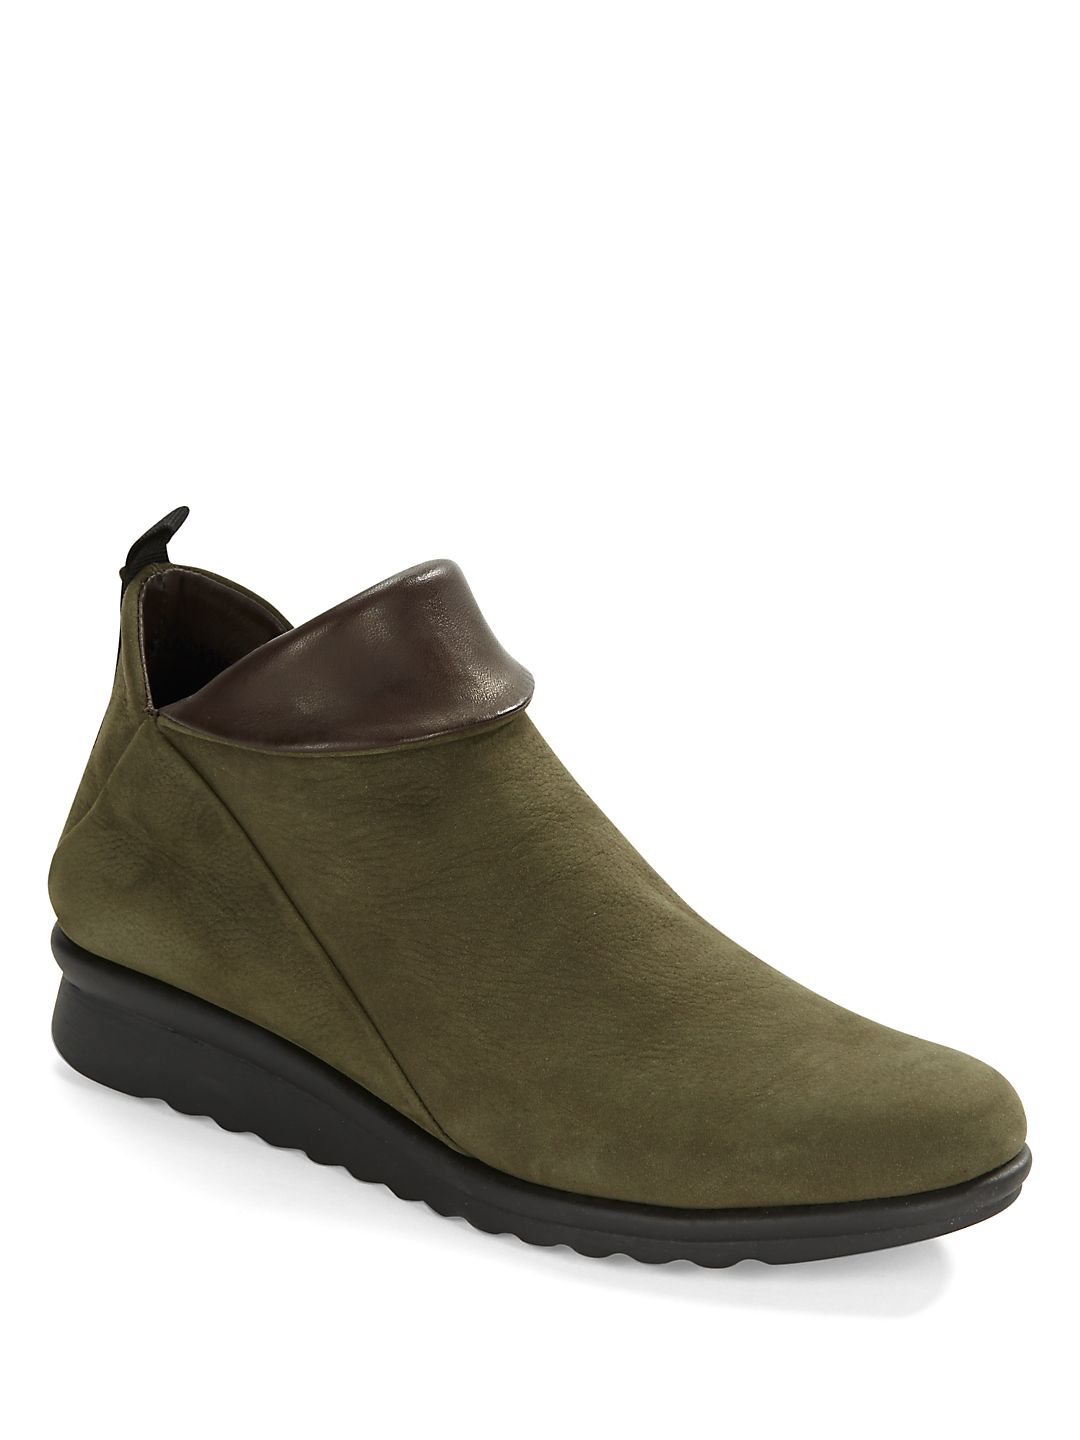 Pan Damme Leather Ankle Boots